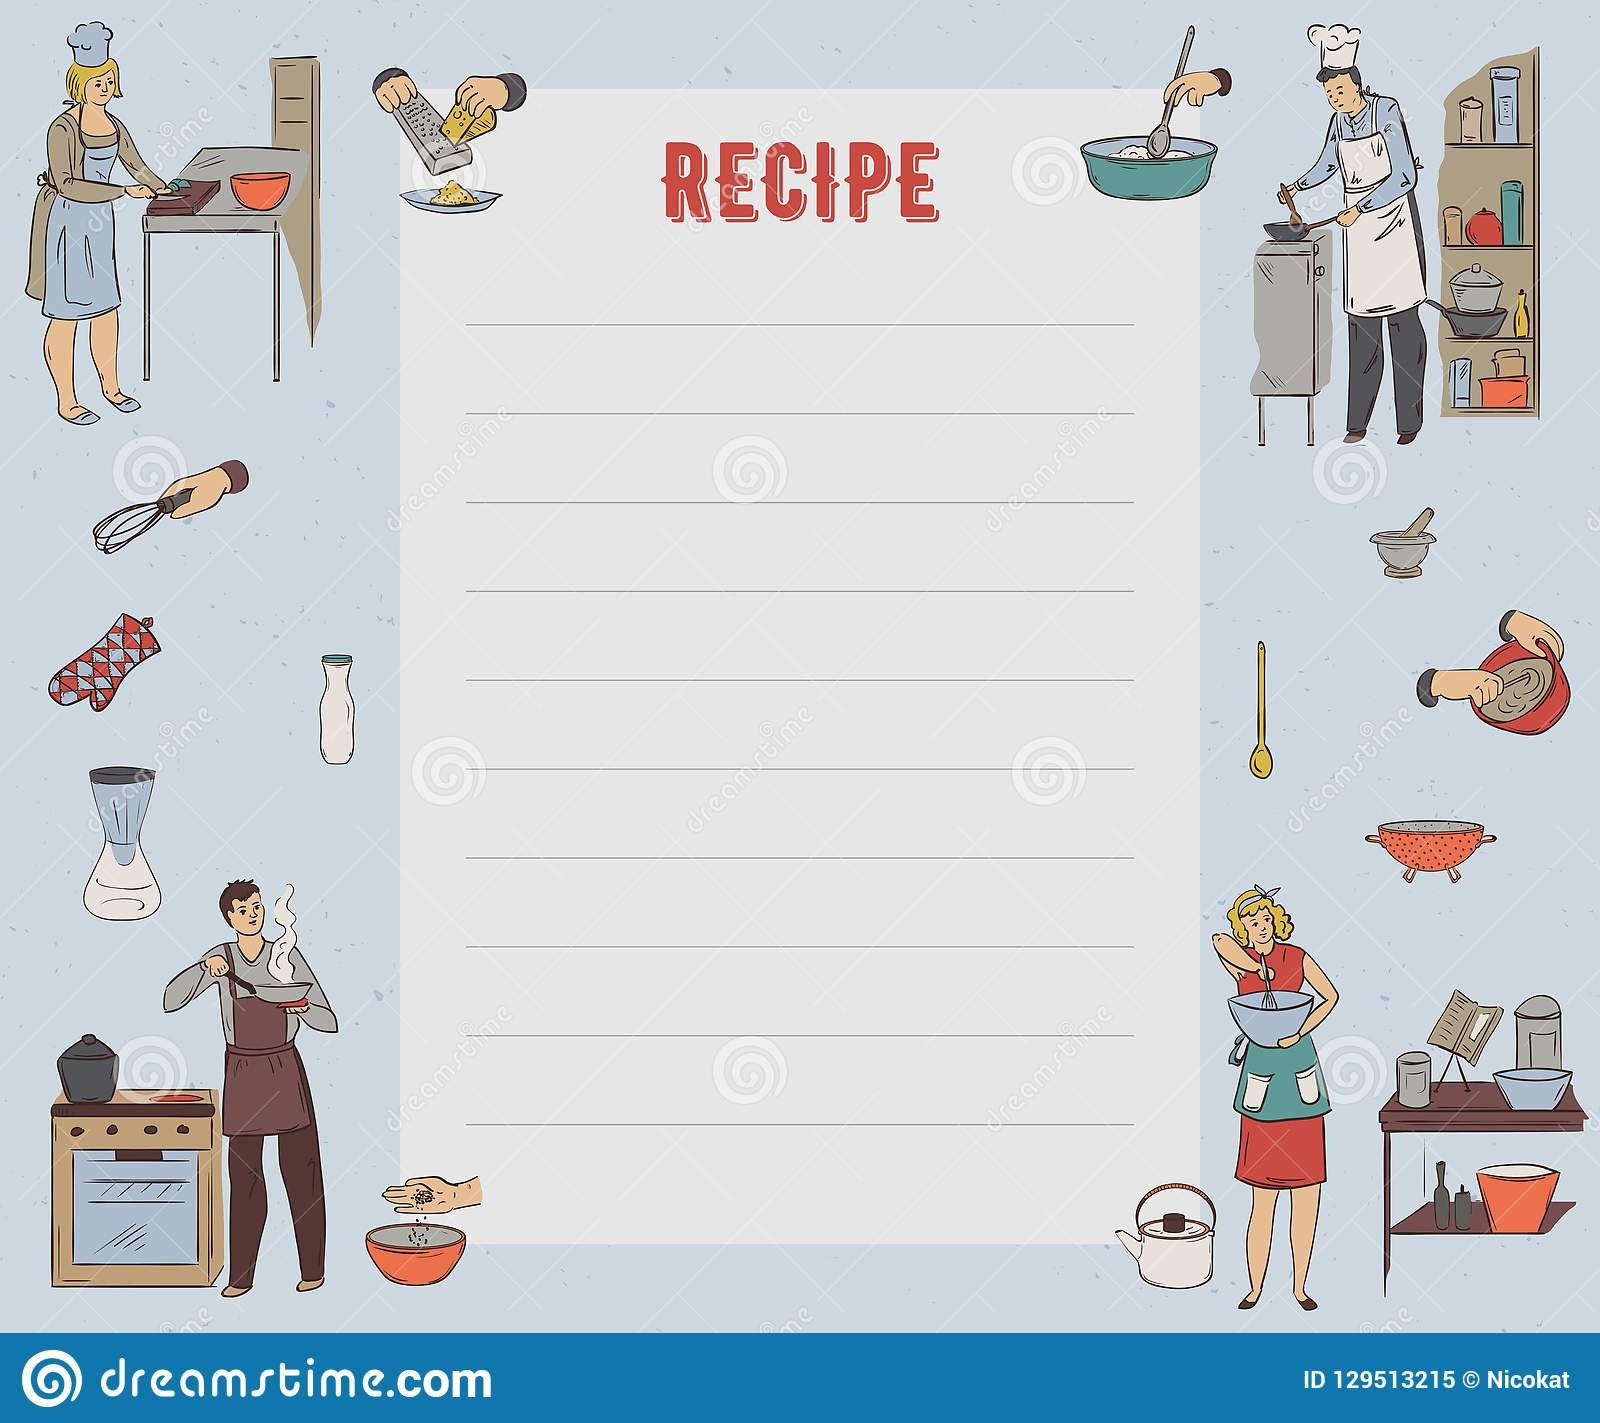 Recipe Card. Cookbook Page. Design Template With People Preparing Pertaining To Recipe Card Design Template